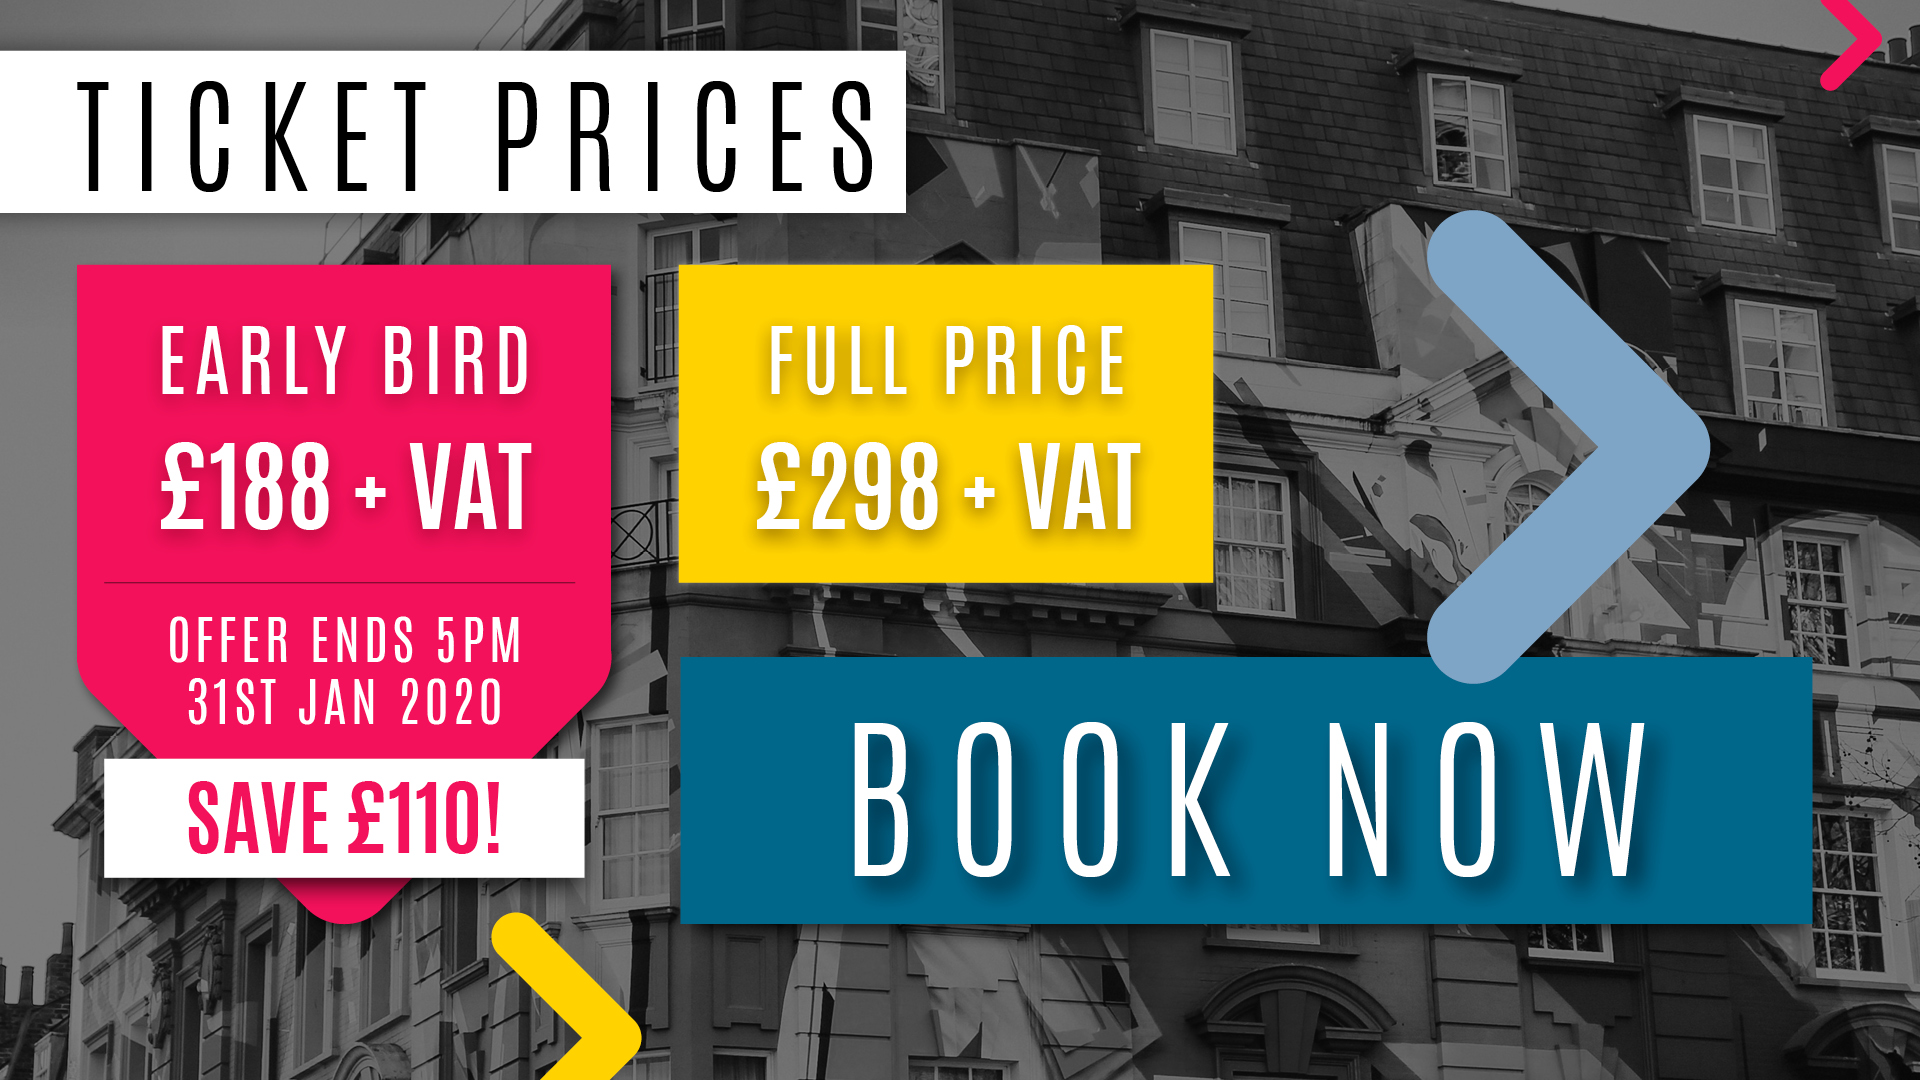 Ticket prices to GenerateJS. Early bird is just £188+VAT.